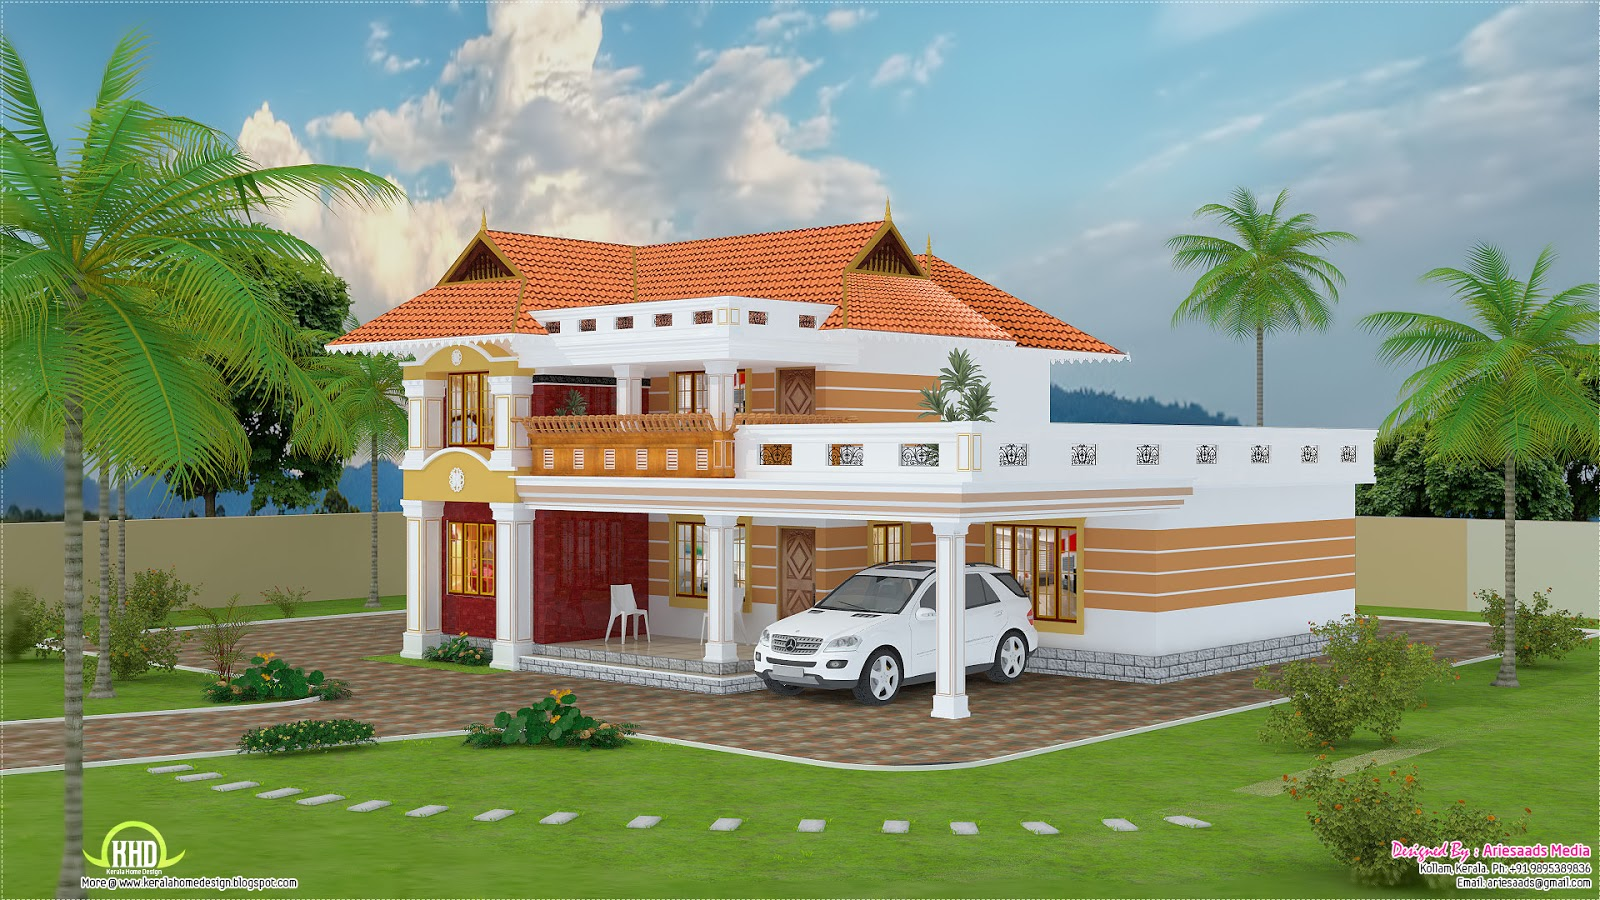 Sq.feet Beautiful Villa Design Kerala Home Design And Floor Plans